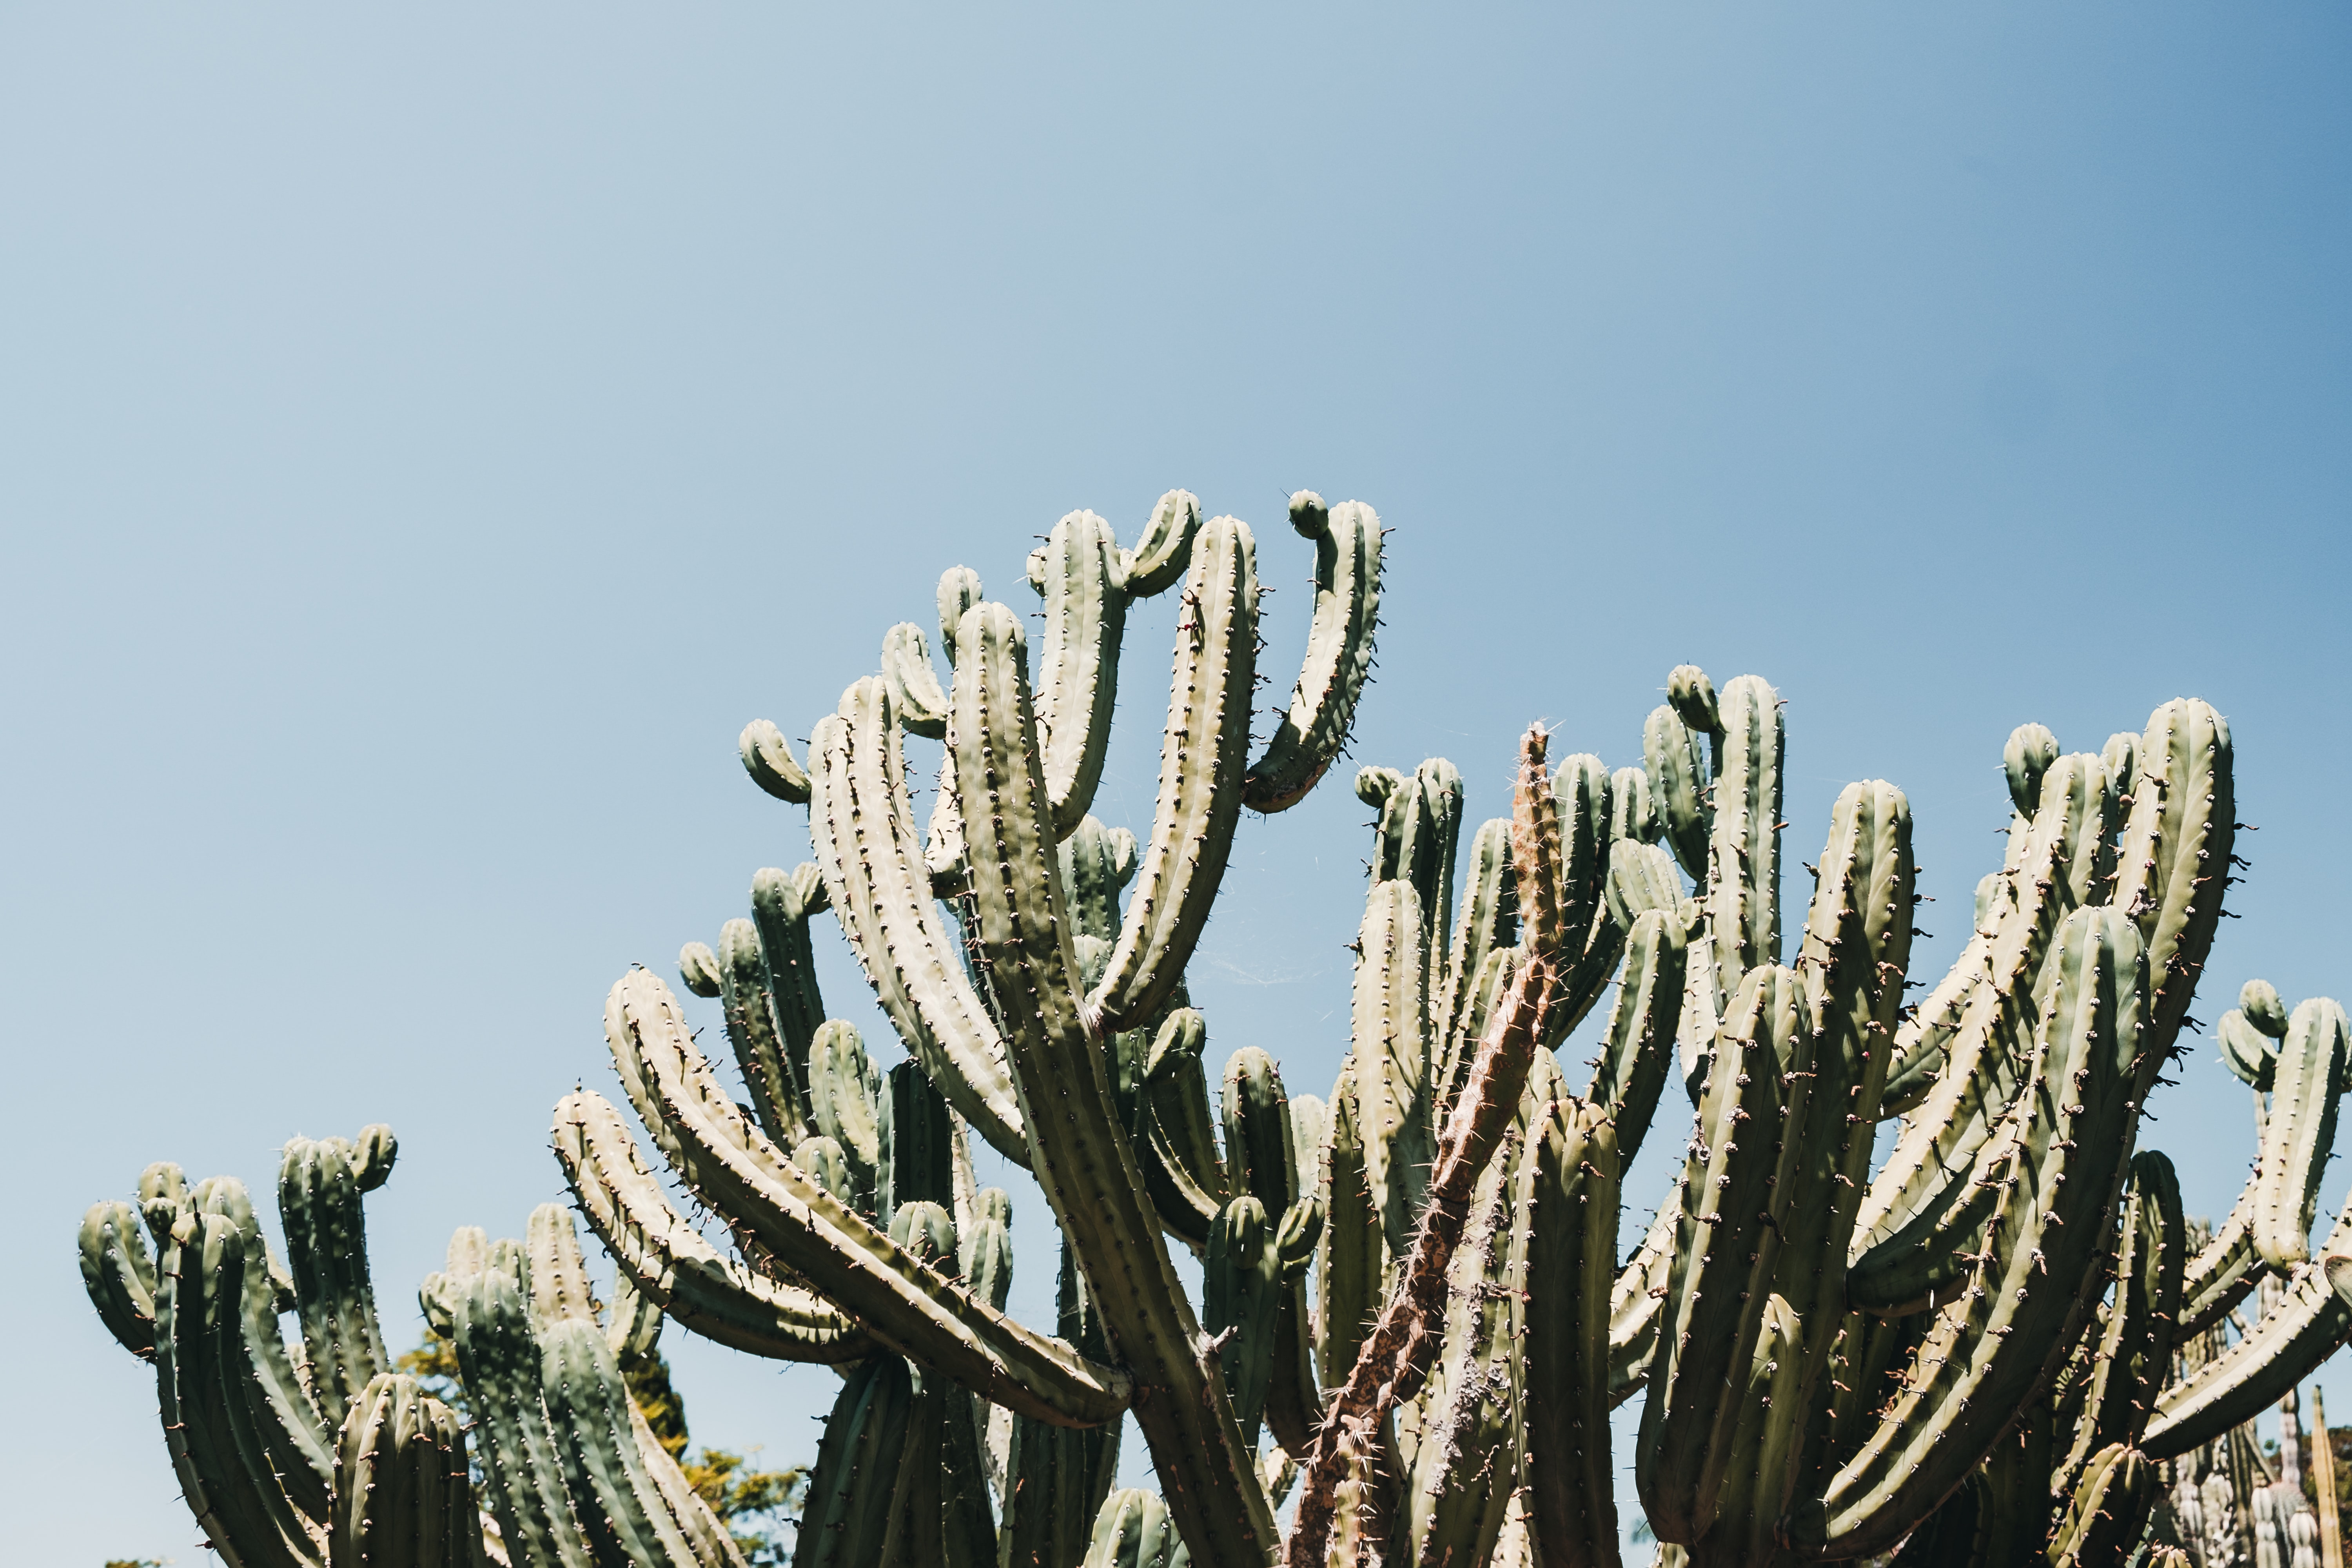 low angle photo of saguaro cactus at daytime